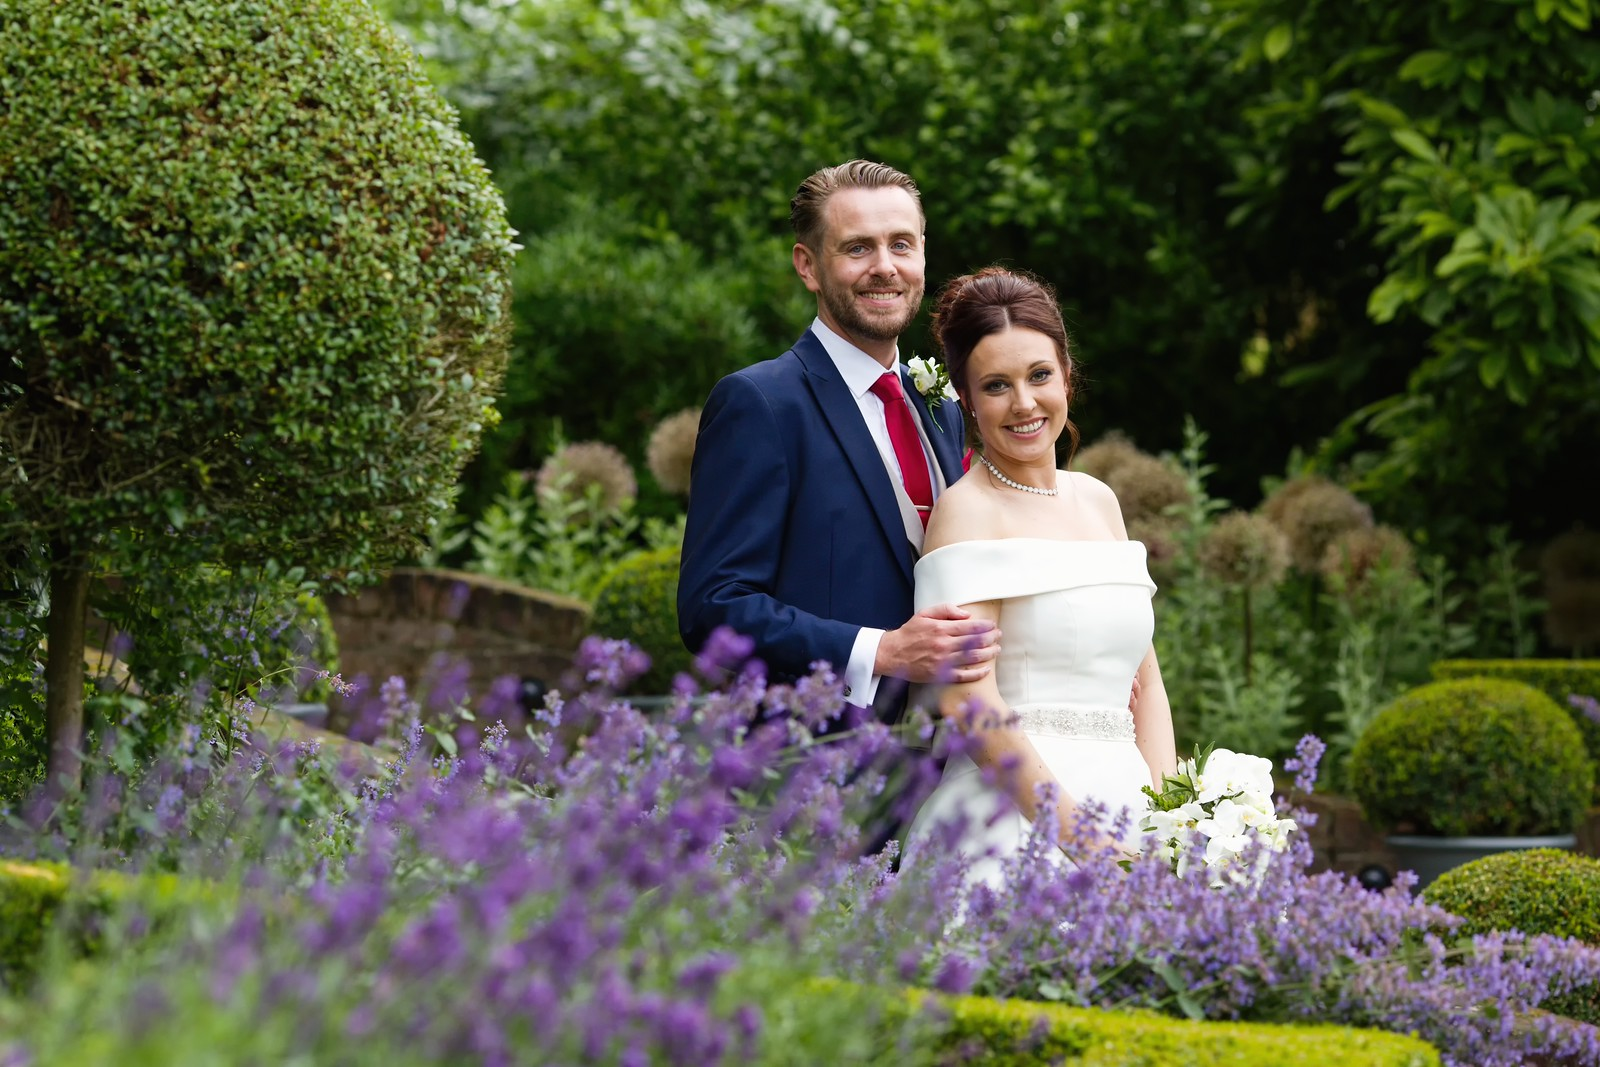 Thank you for turning our wedding dream into reality at Le Talbooth